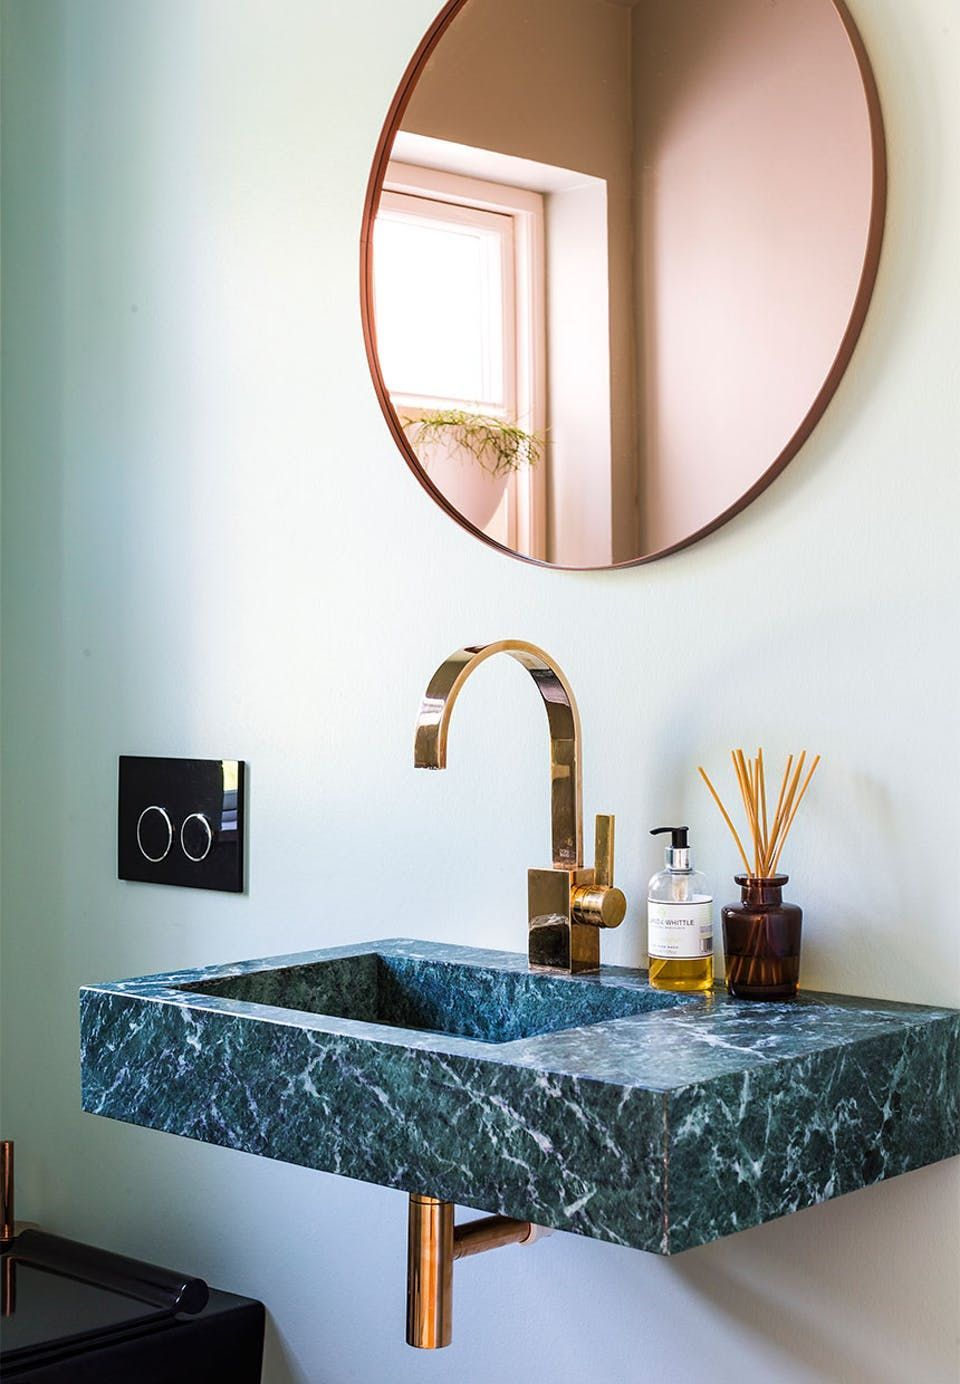 Elegant Bathroom Details A Stunning Green Marble Sink With Luminaire And Mirror In Brass Green Marble Bathroom Elegant Bathroom Gorgeous Bathroom